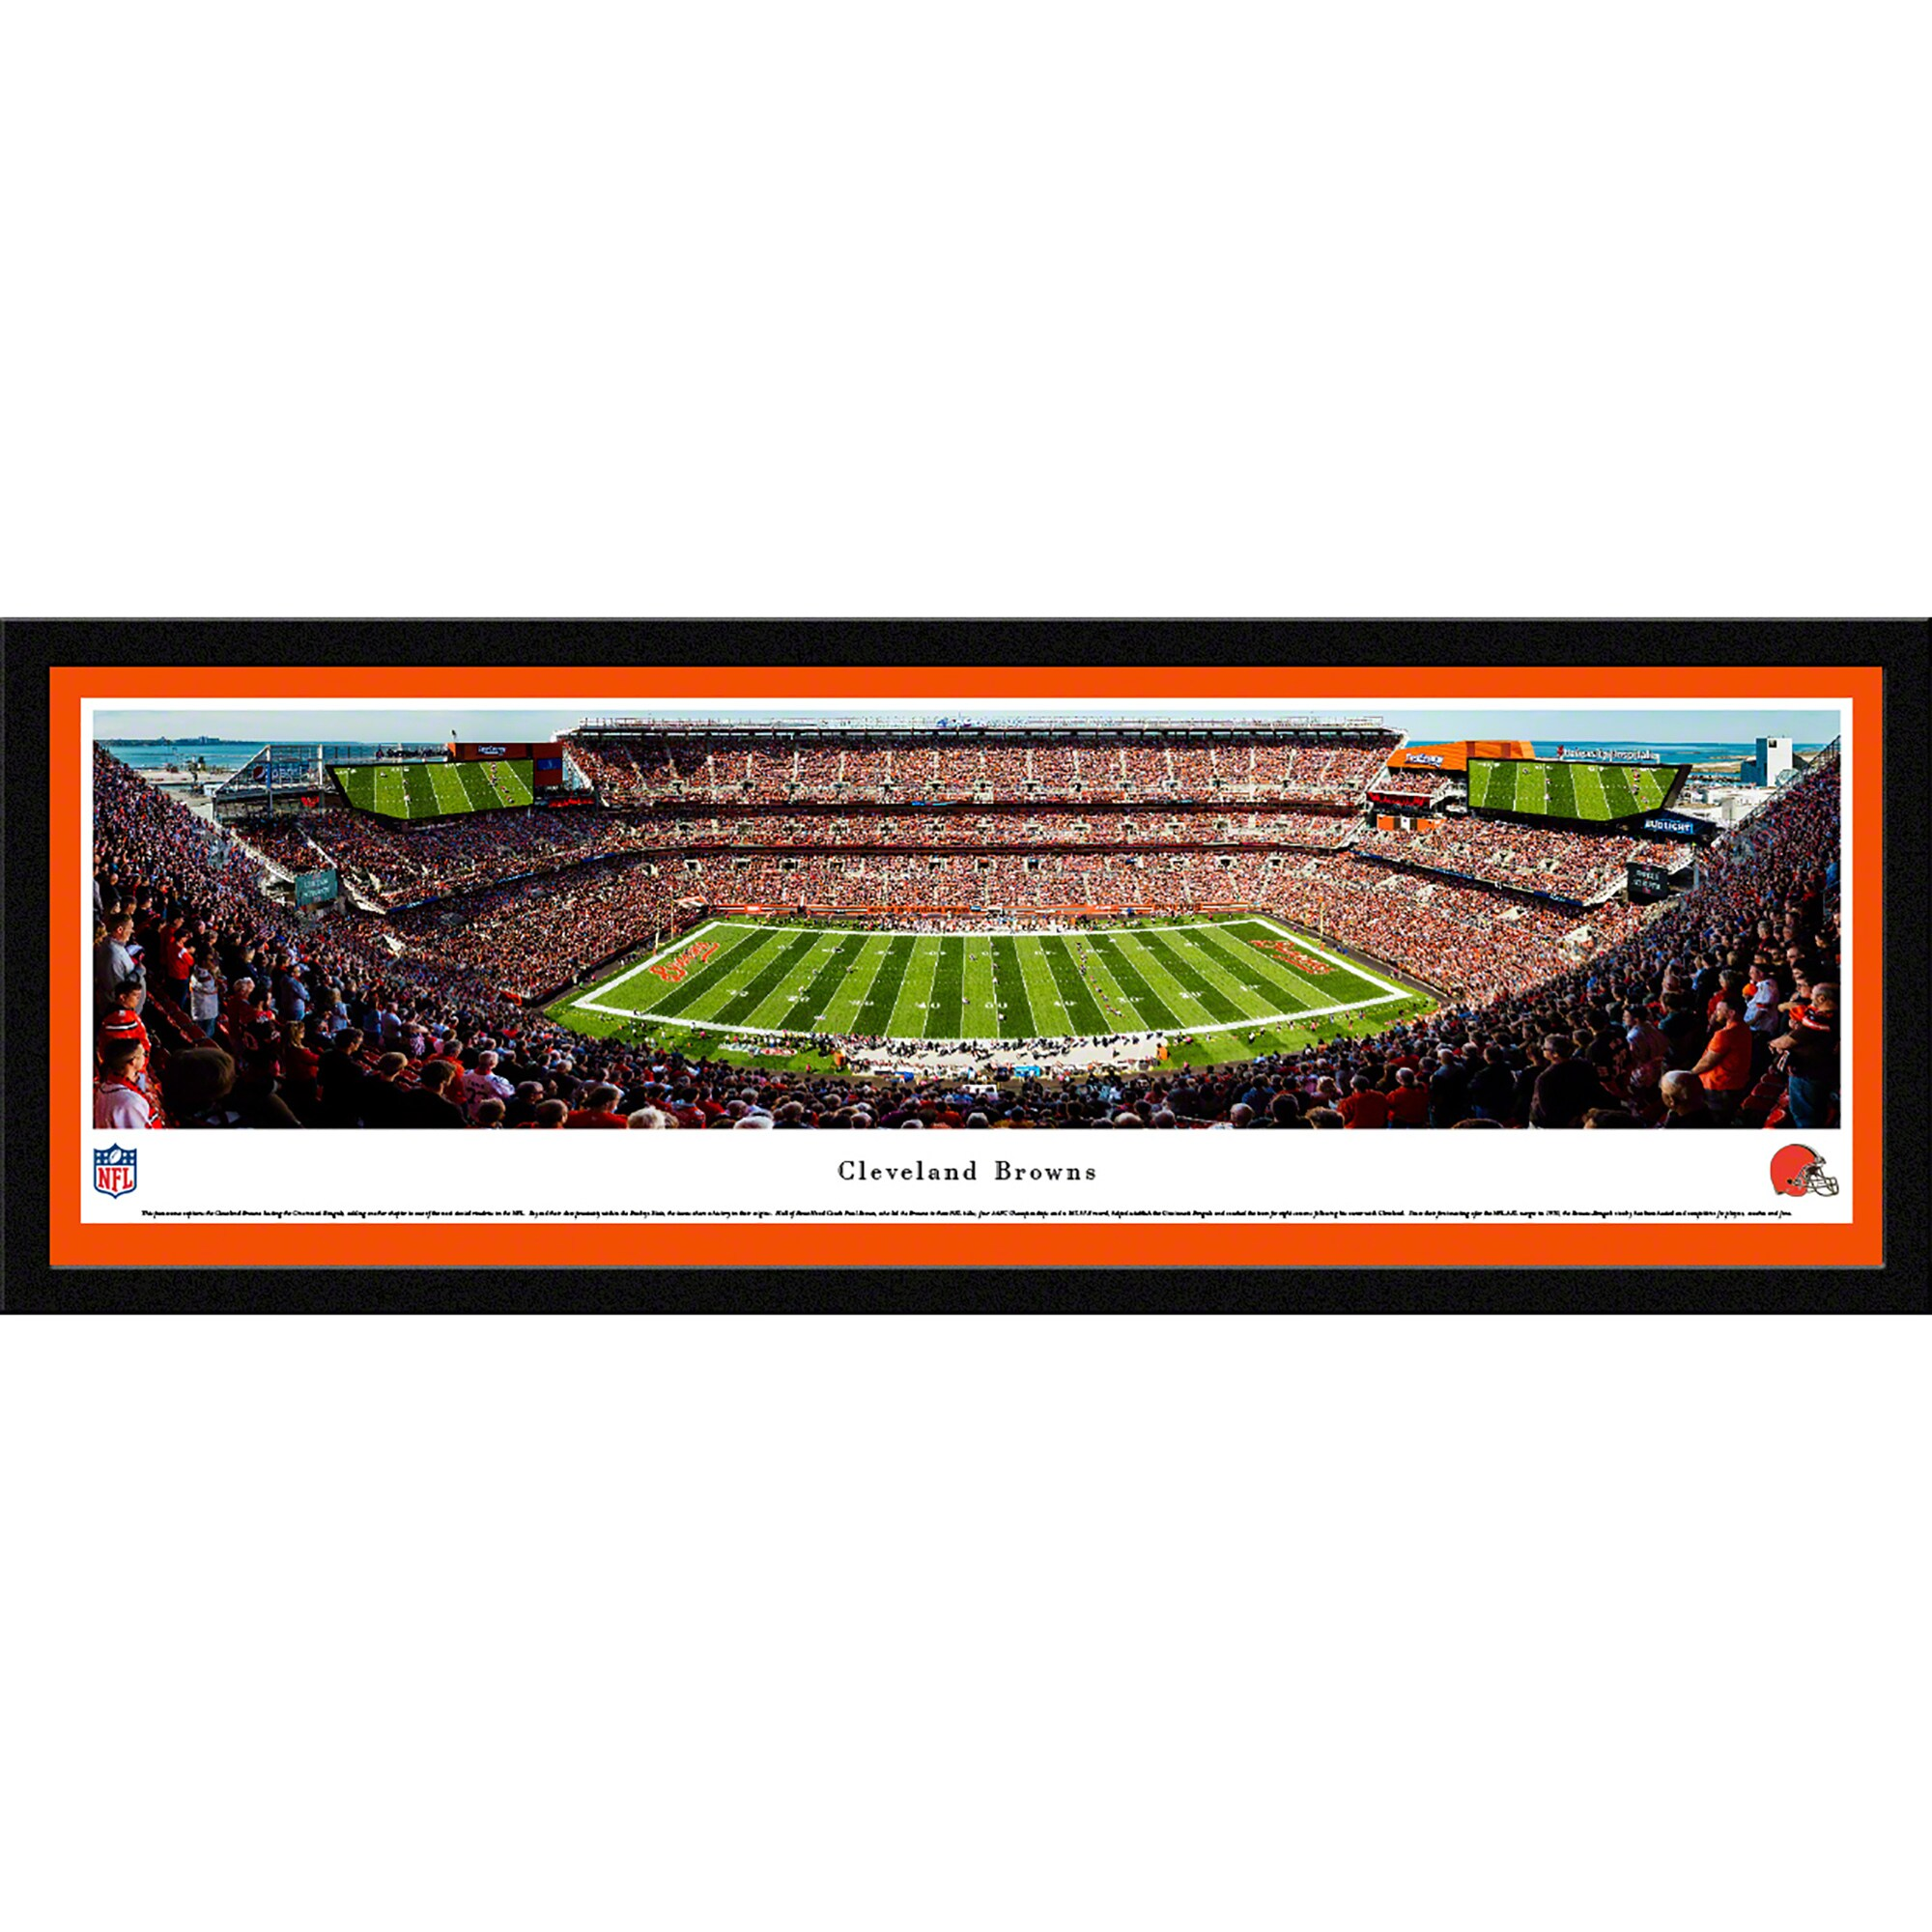 "Cleveland Browns 42"" x 15.5"" 50-Yard Line Select Framed Panoramic"